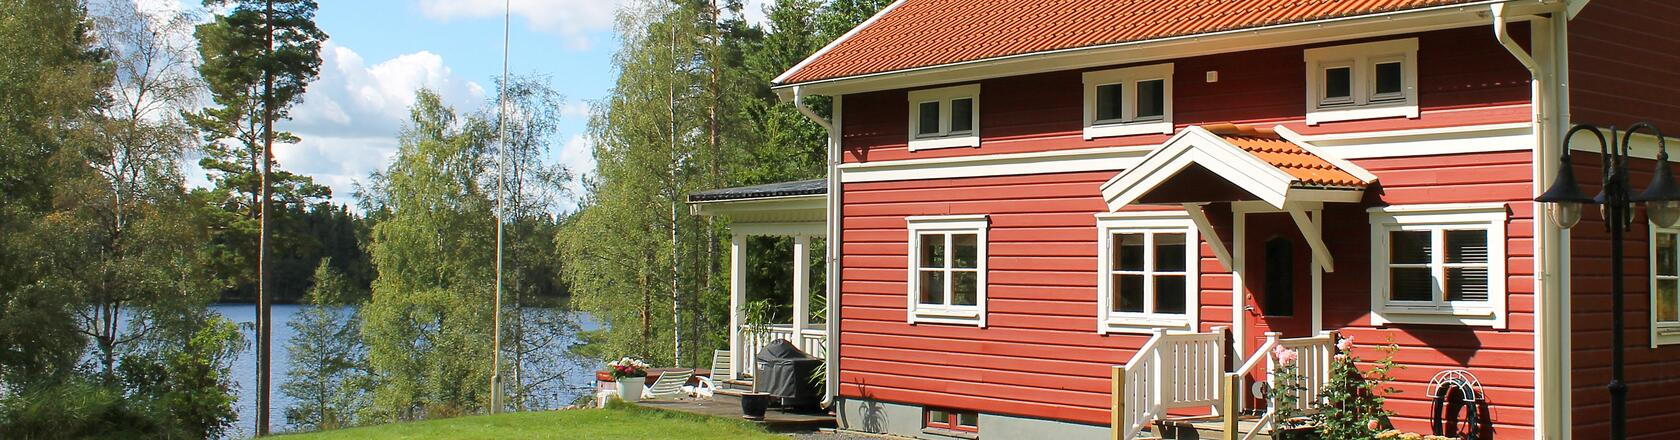 Vittsjö in Sweden - Rent a holiday home  with DanCenter